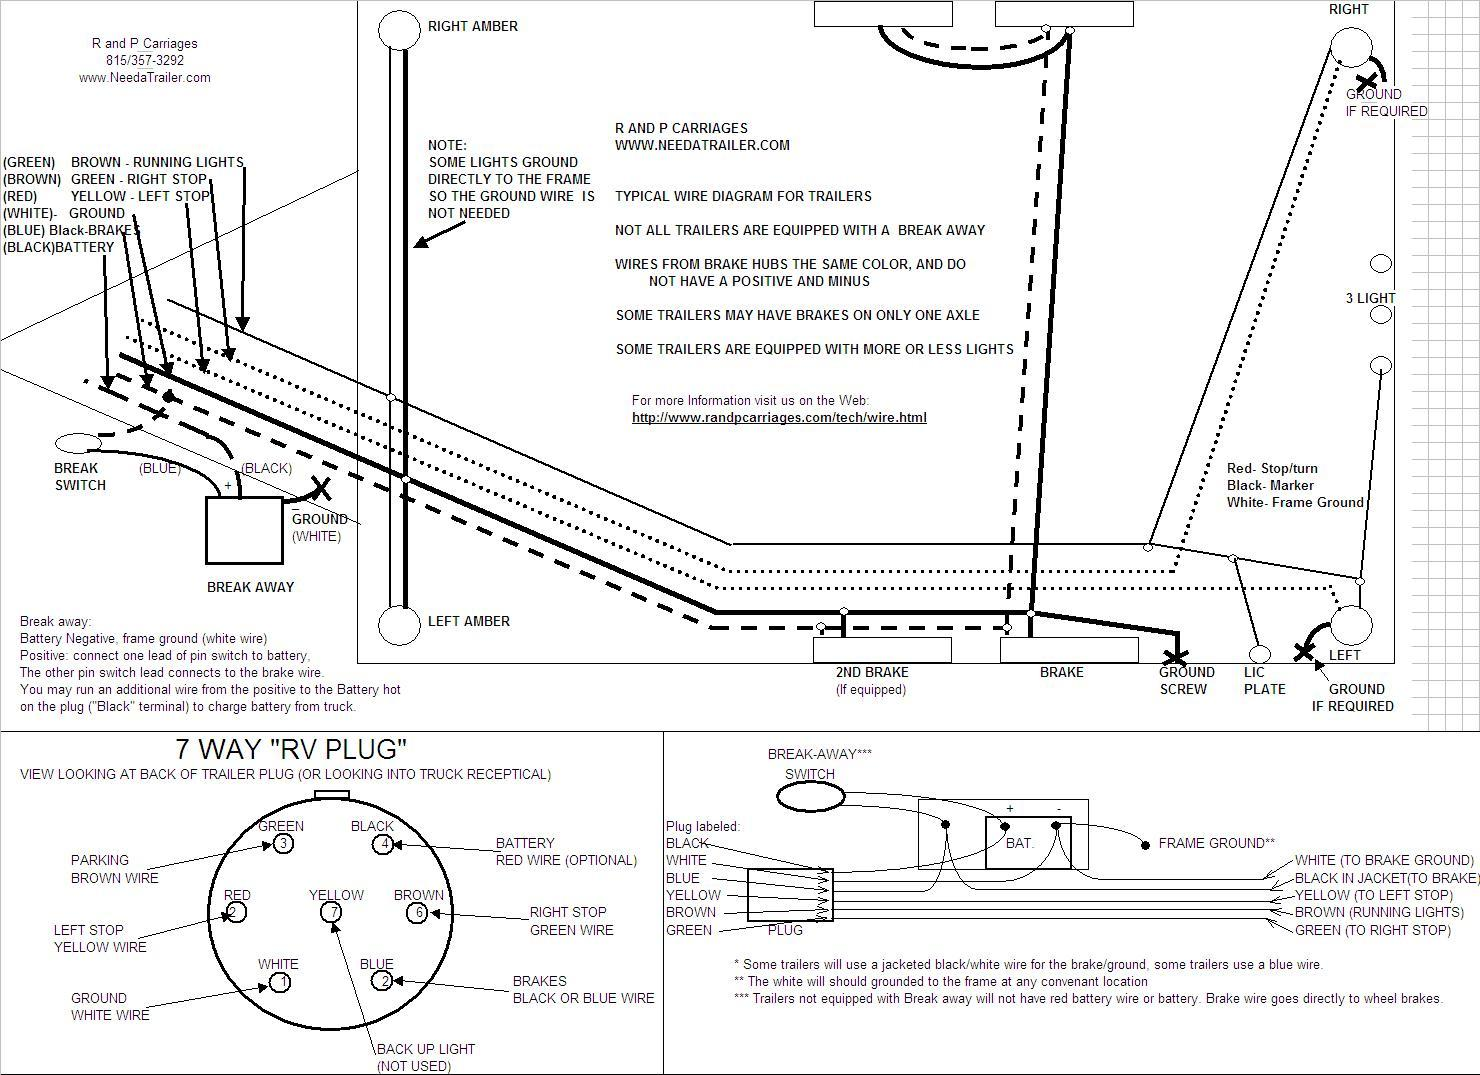 7 way wiring diagram 7 way plug wiring diagram 7 way trailer light diagram \u2022 free dodge 7 pin wiring diagram at bakdesigns.co